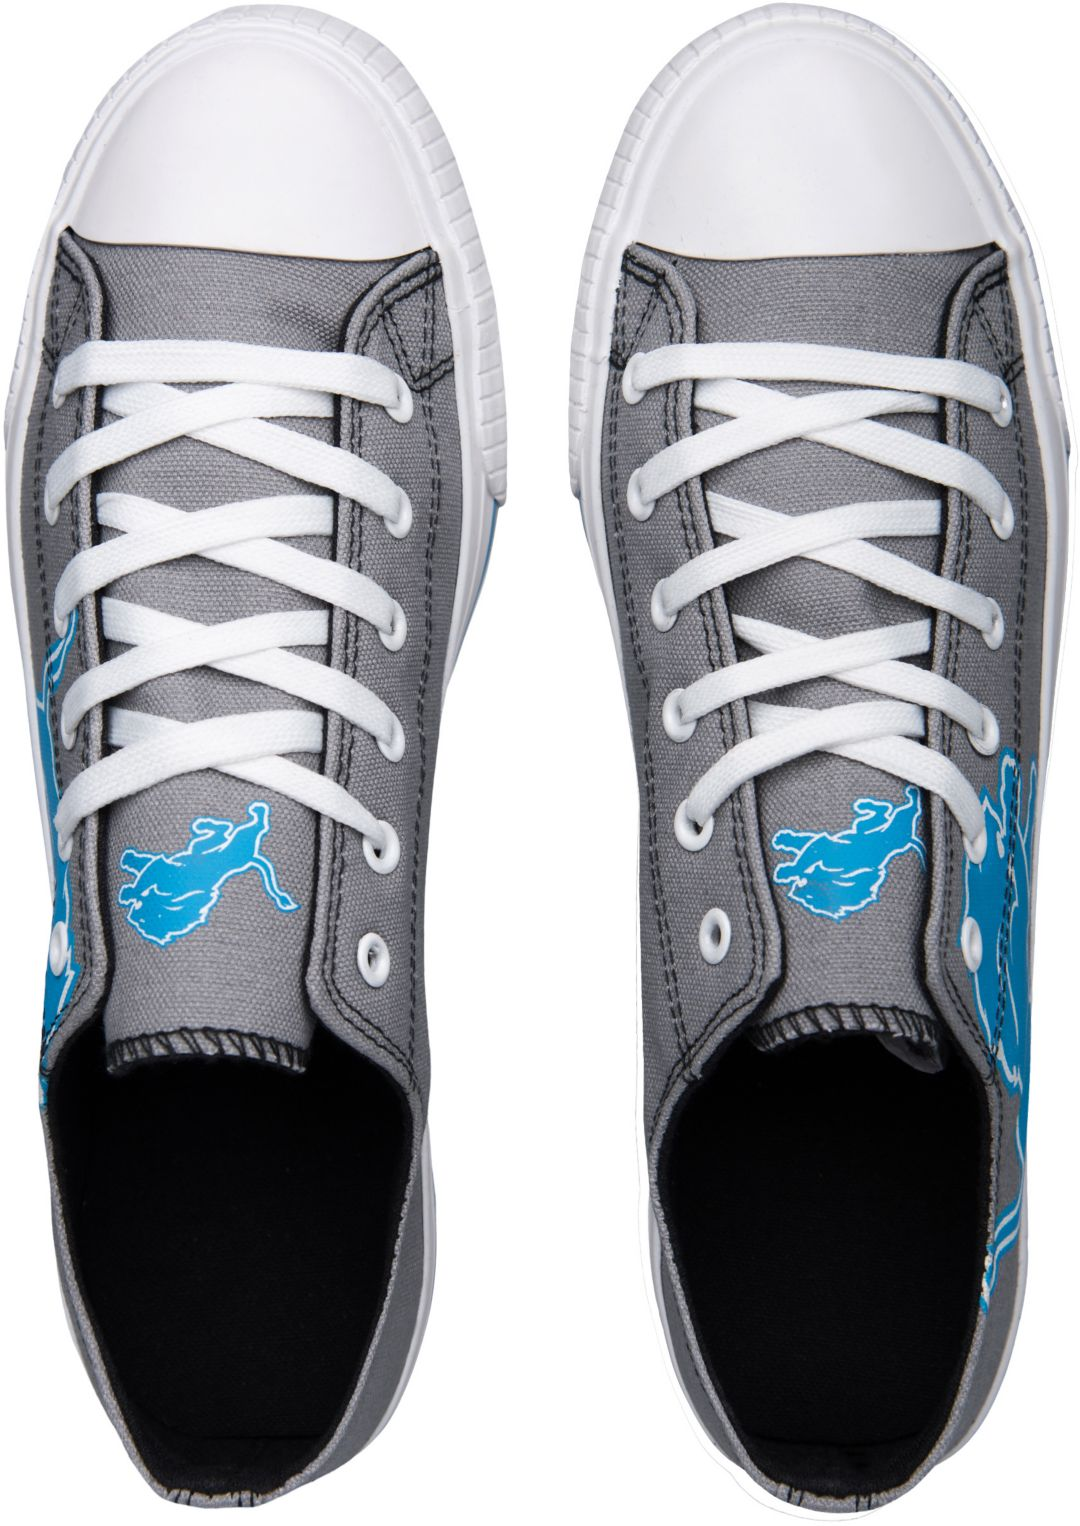 d673a7c4 FOCO Detroit Lions Men's Canvas Sneakers